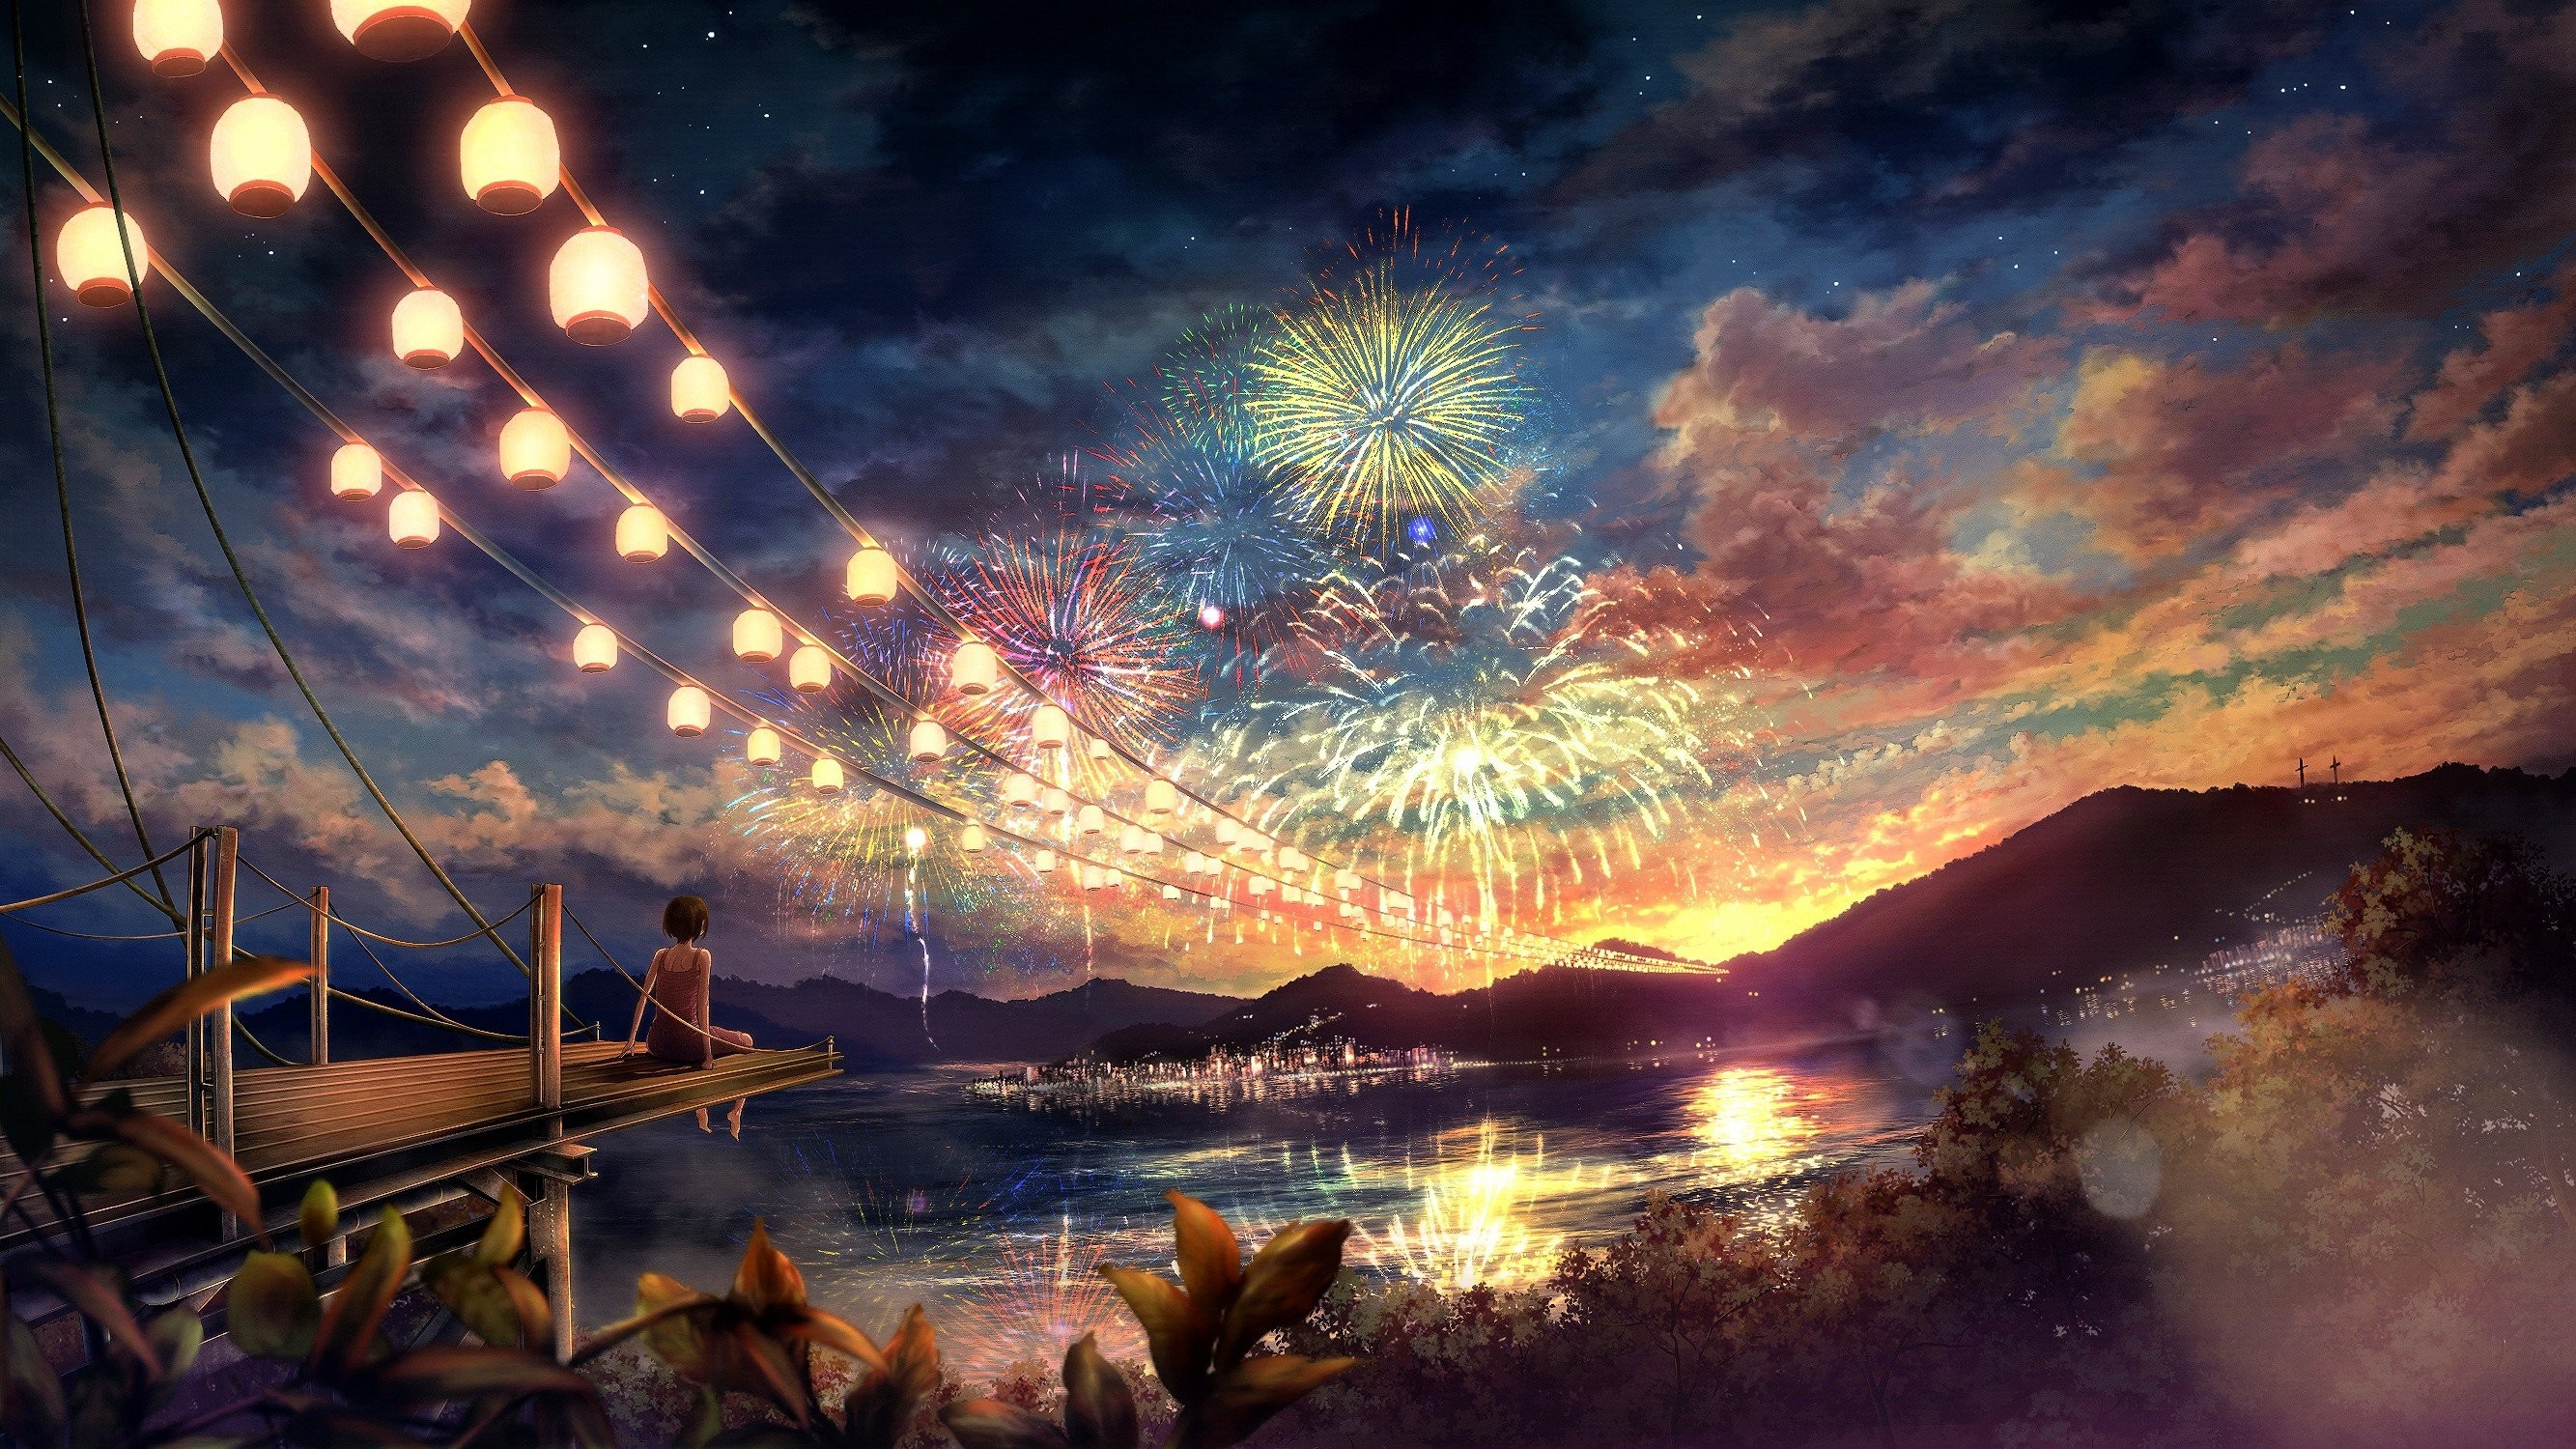 Night Anime Scenery High Quality Resolution Wallpapers Dark Iphone .